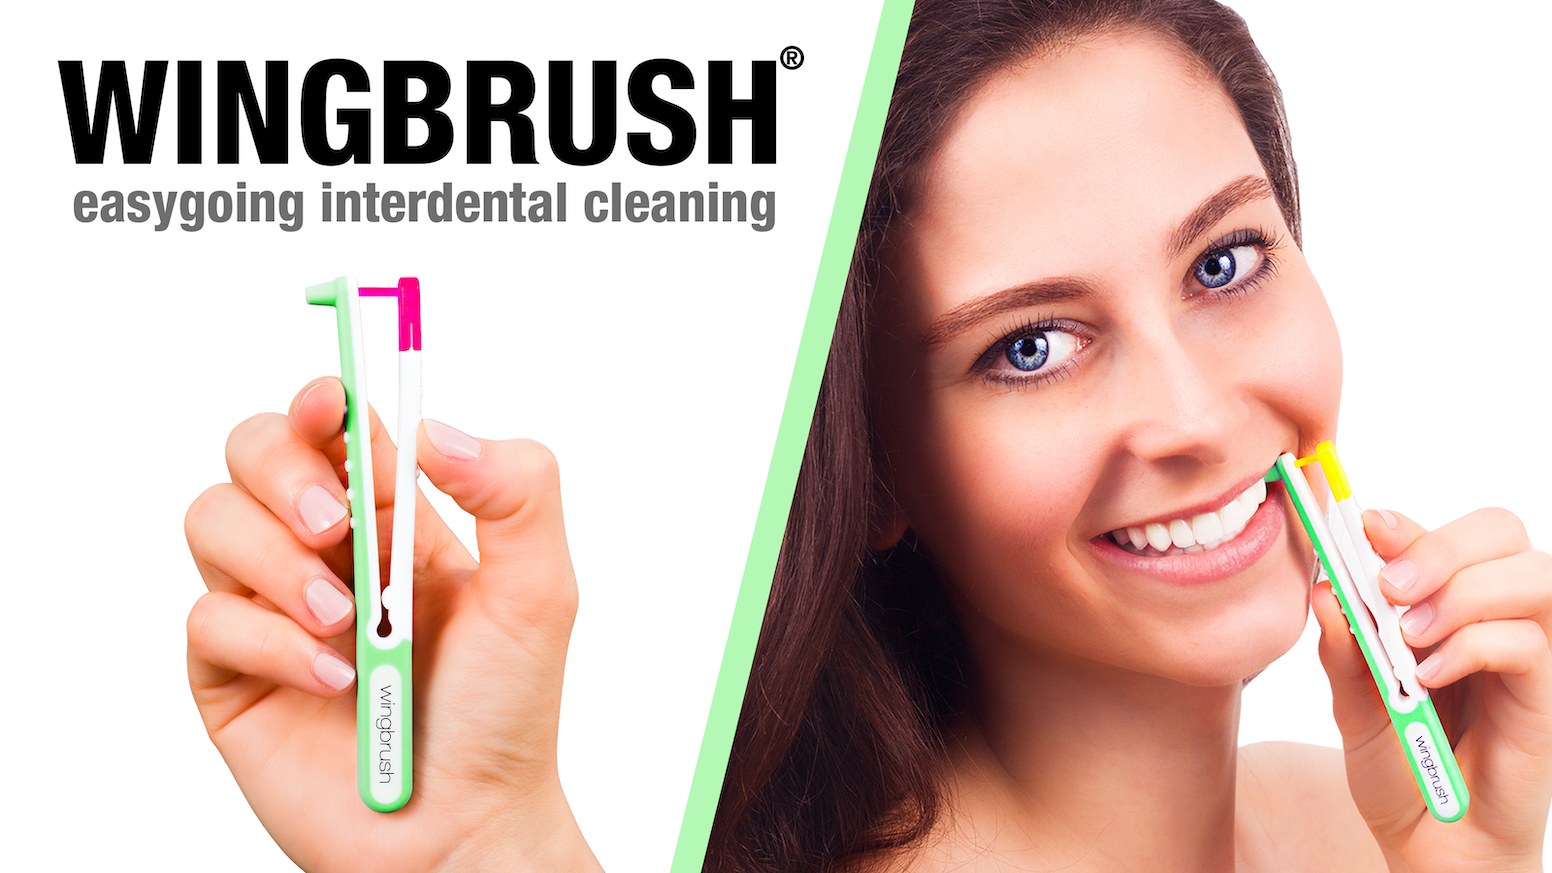 Easygoing interdental cleaning! Thanks to its smart feeler technology, you intuitively find your interdental spaces.